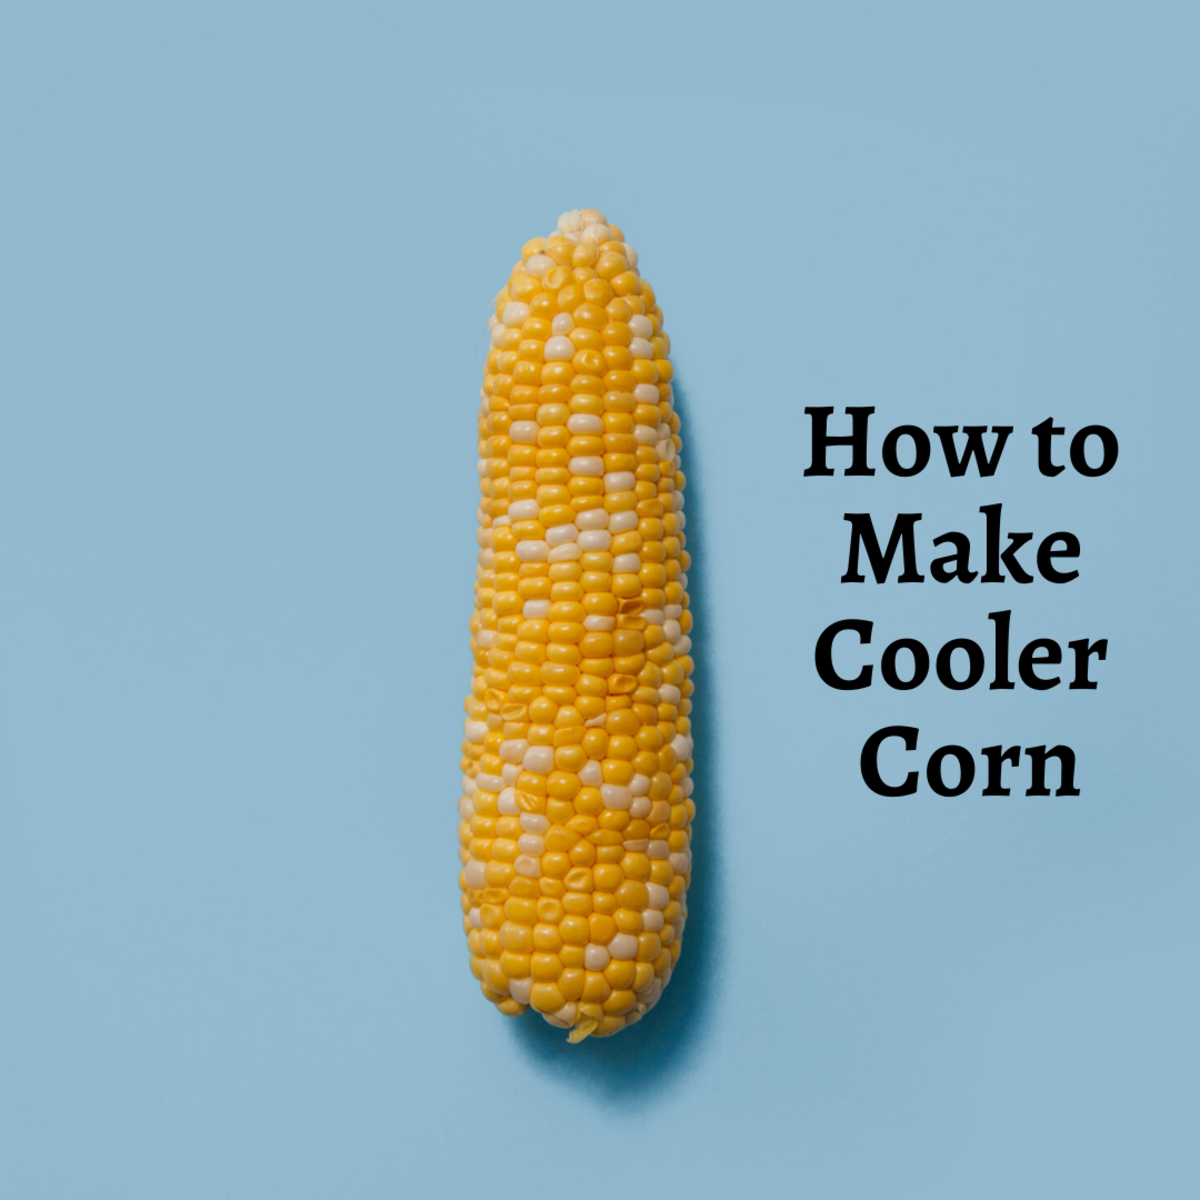 How to Make Cooler Corn: Step-by-Step Guide